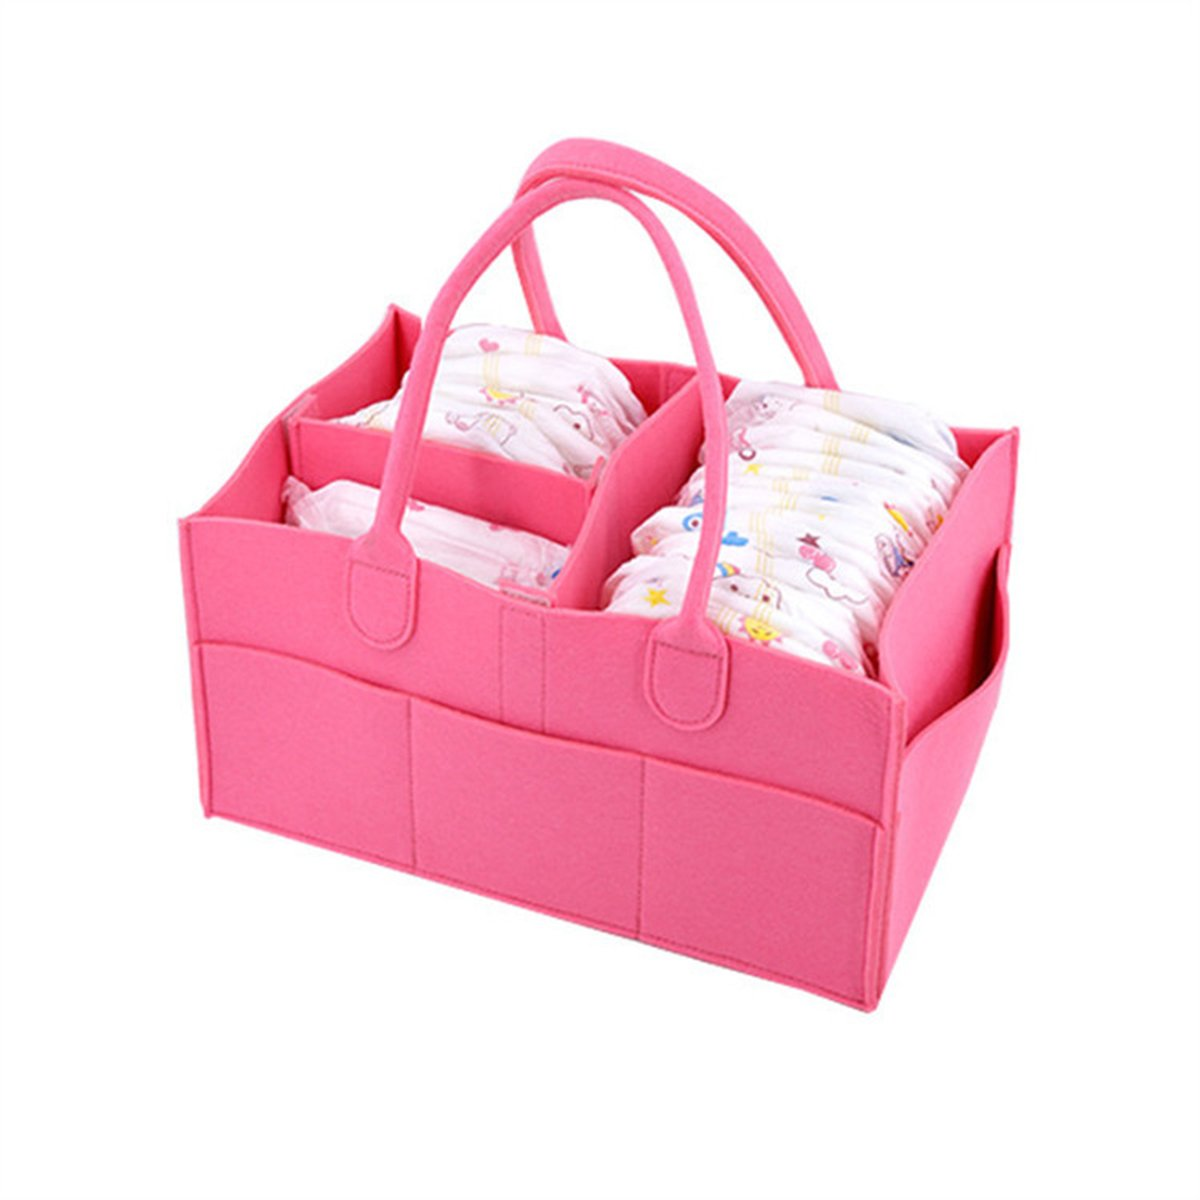 Baby Diaper Caddy Large Portable Organizer for Diapers Toys and Wipes Newborn Registry Must Haves - 13 x 9 x 7 inches by BB Hapeayou (Pink Felt)